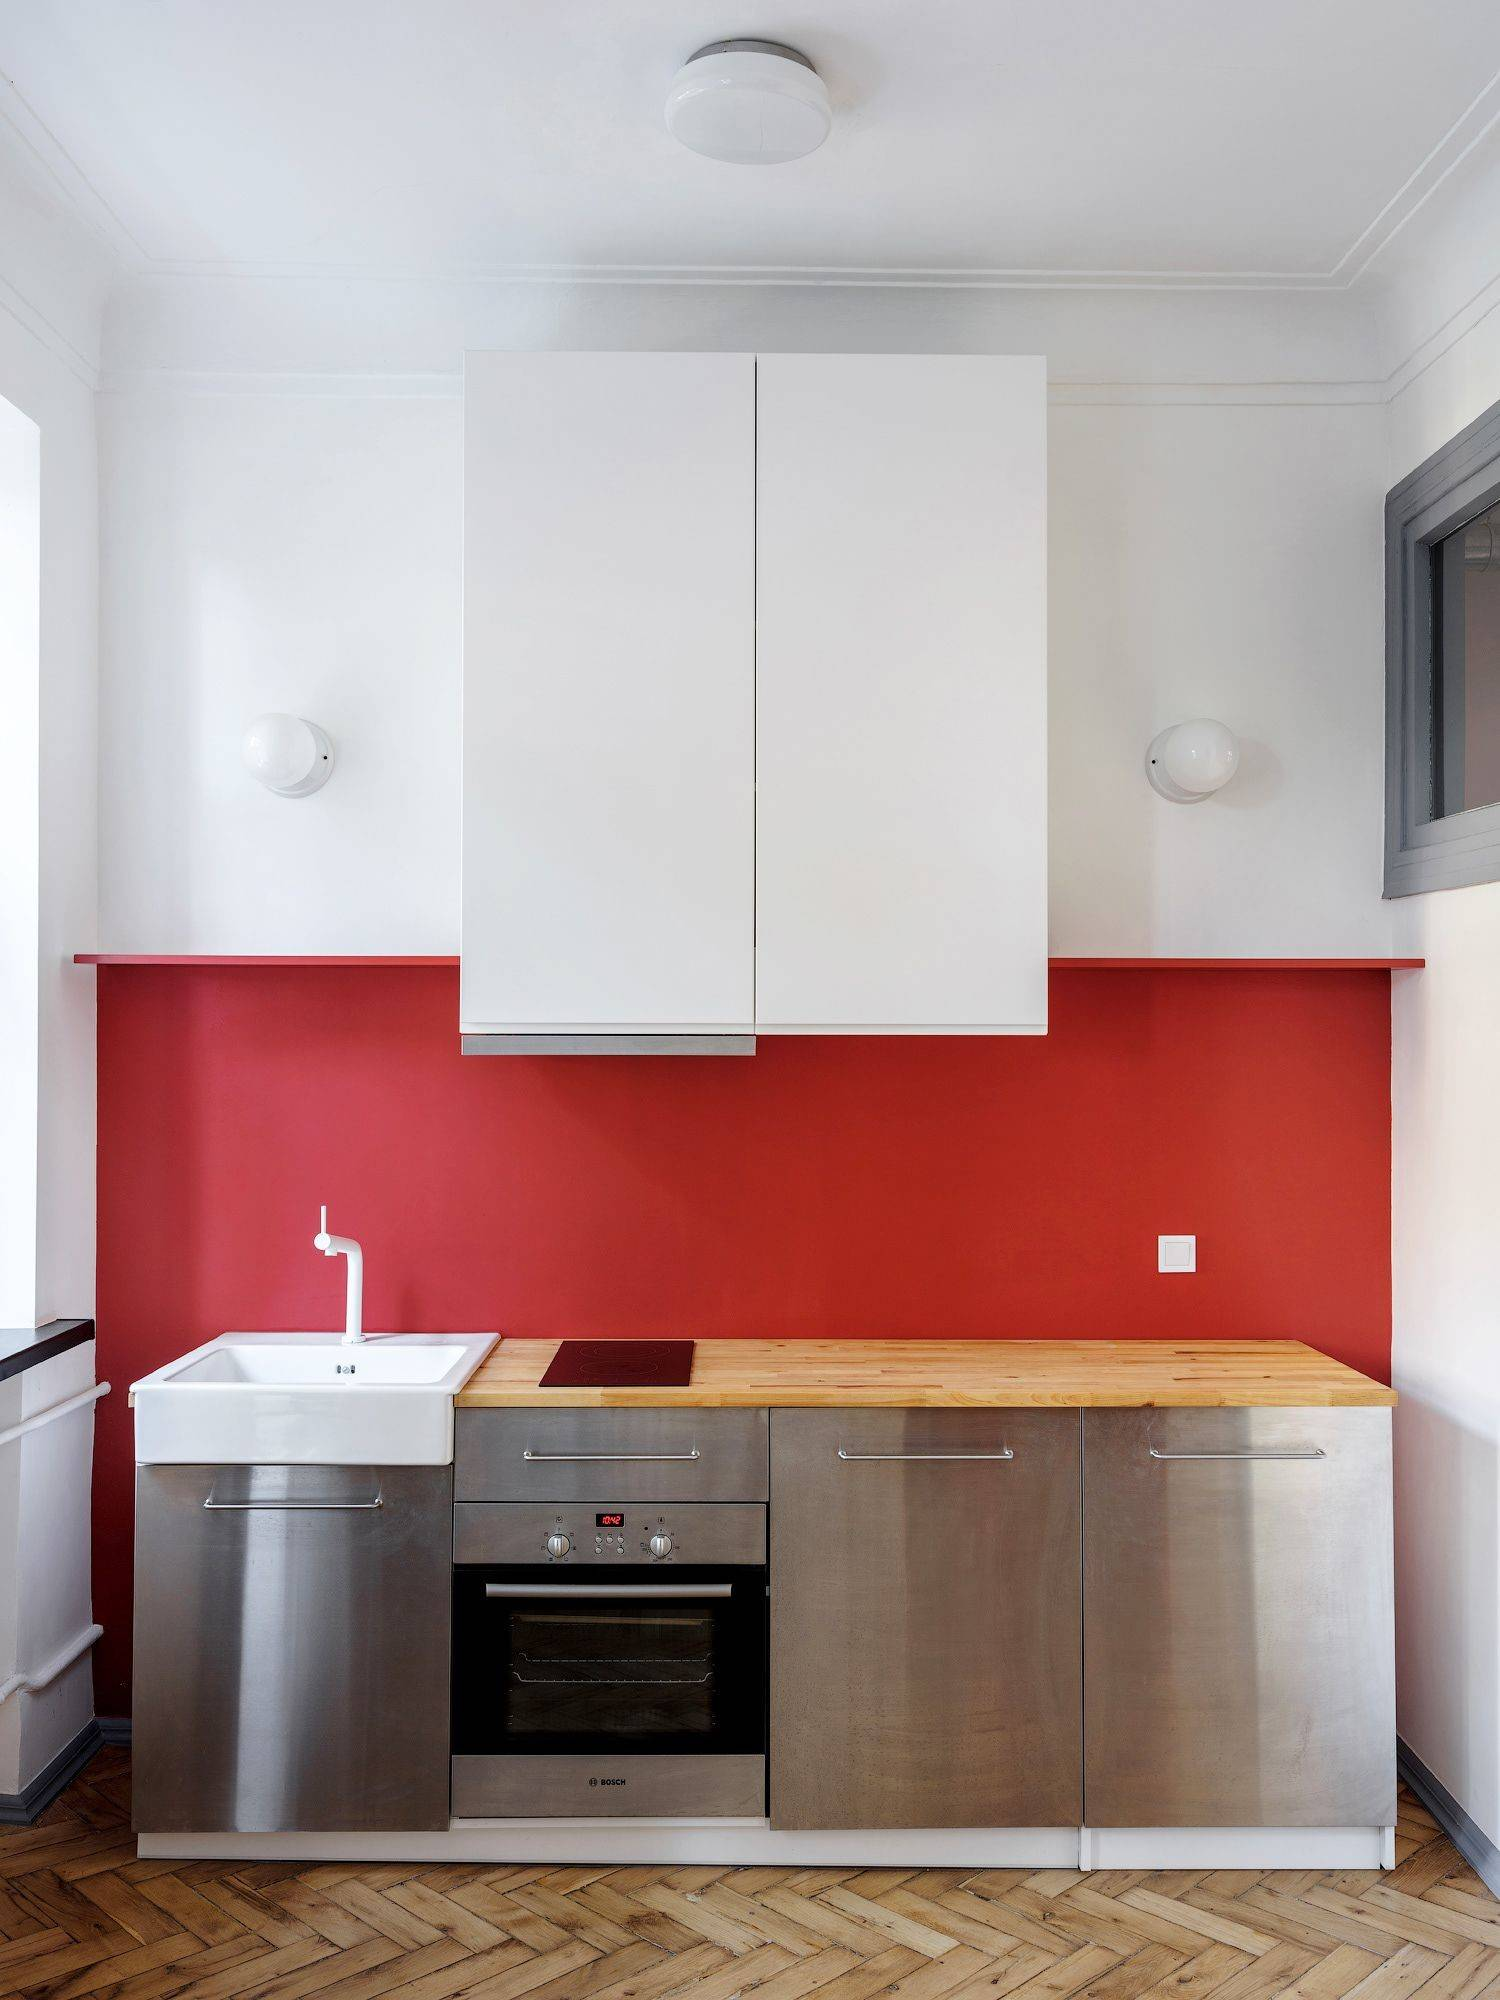 red wall in kitchen with stainless steel appliances and white cabinets